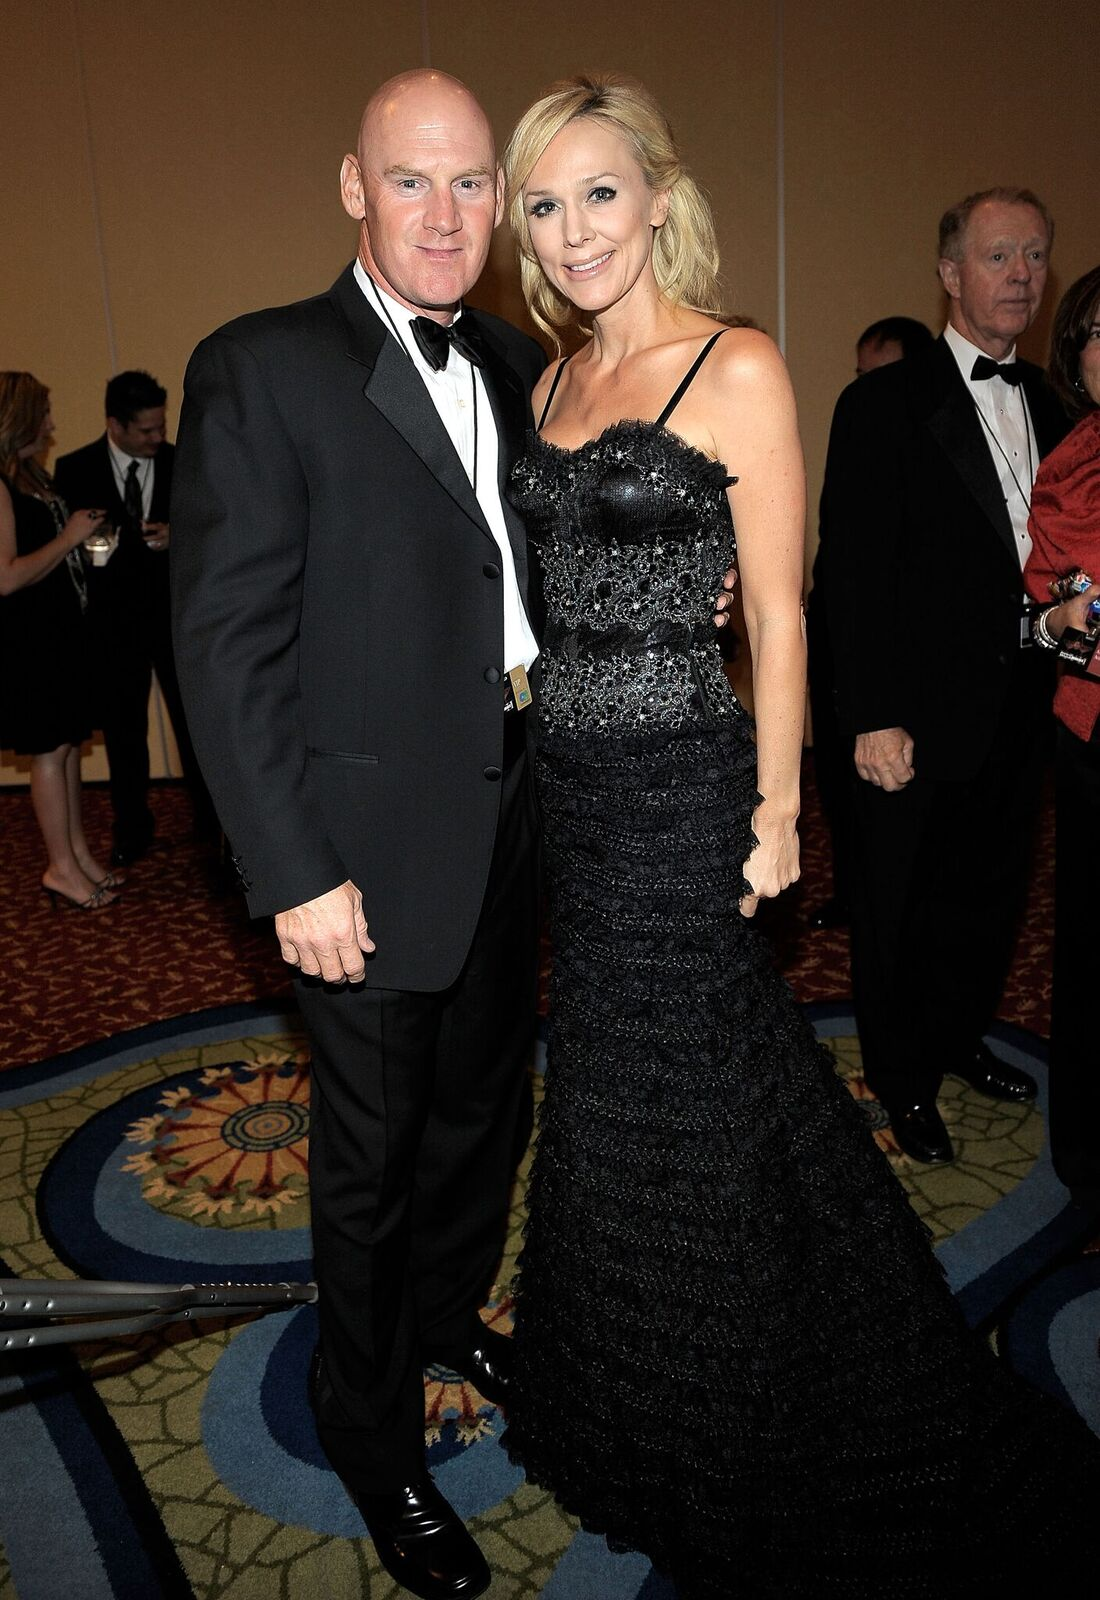 Matt Williams and Erika Monroe at the Muhammad Ali's Celebrity Fight Night XVII in 2011 | Source: Getty Images